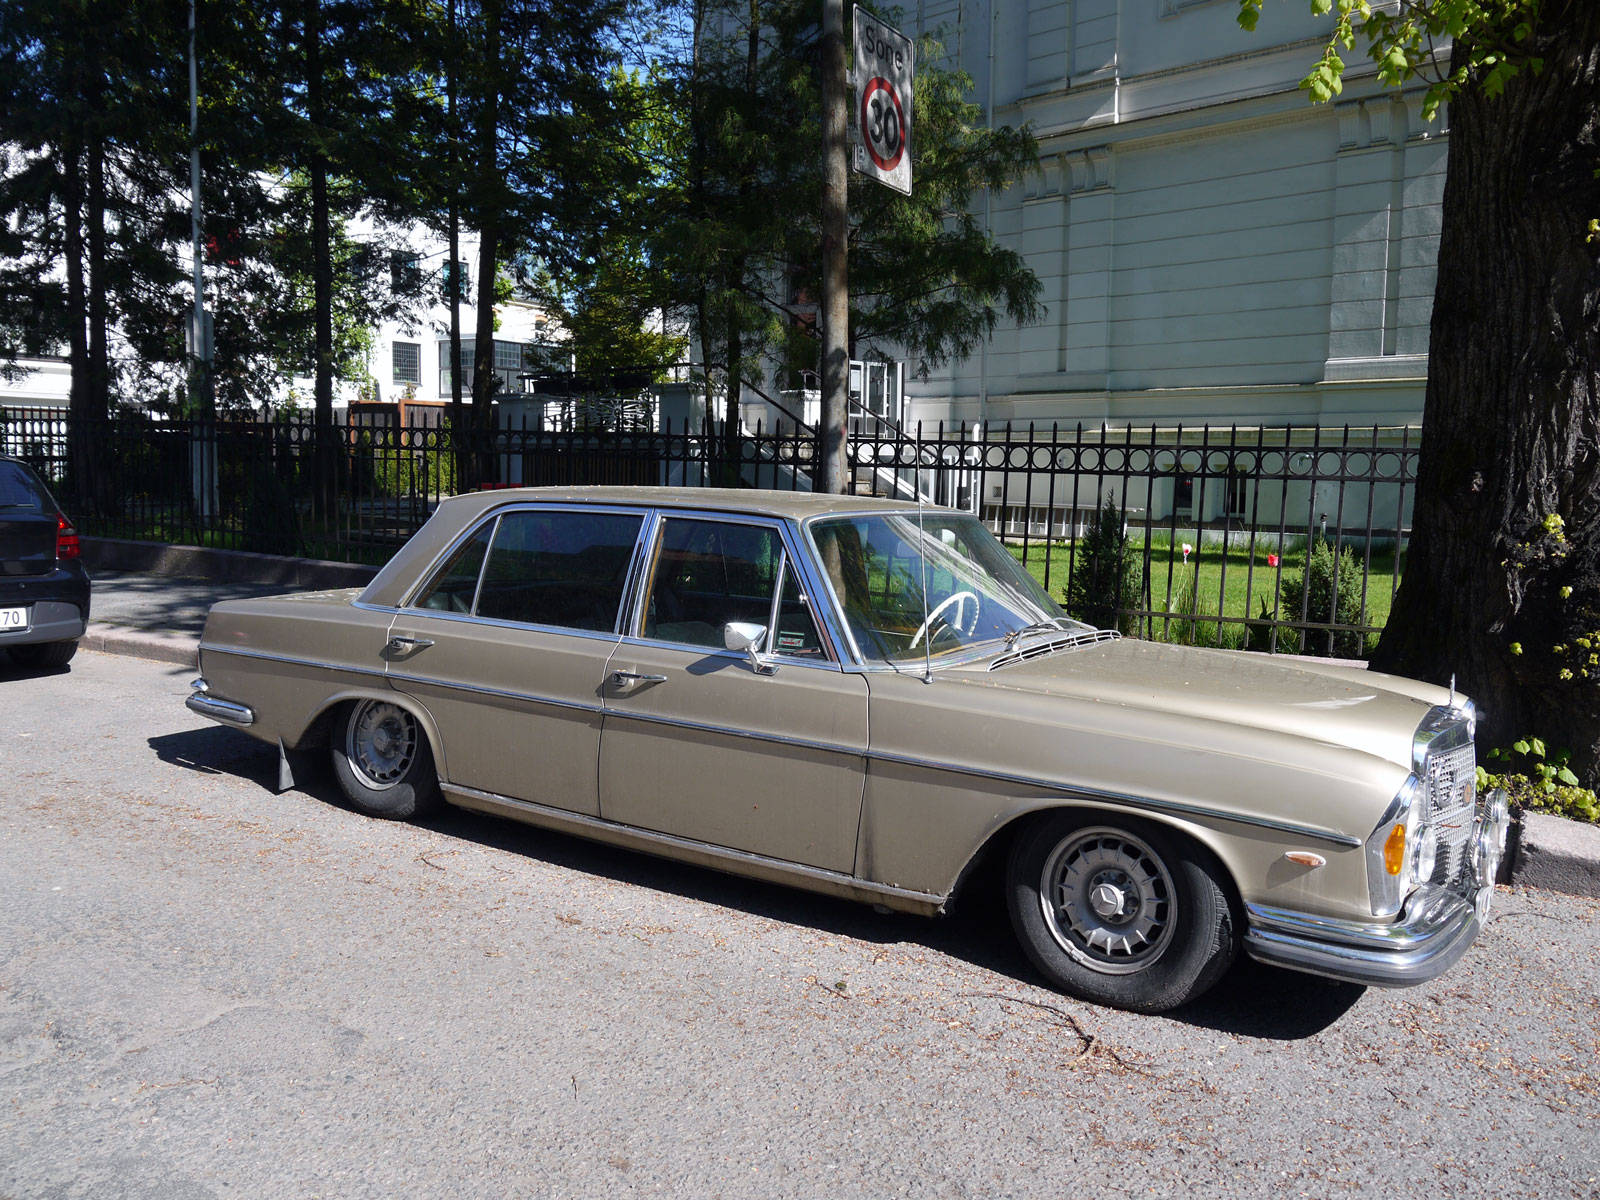 1971 Mercedes-Benz 300 SEL 3.5 W108 W109 Oslo Norway